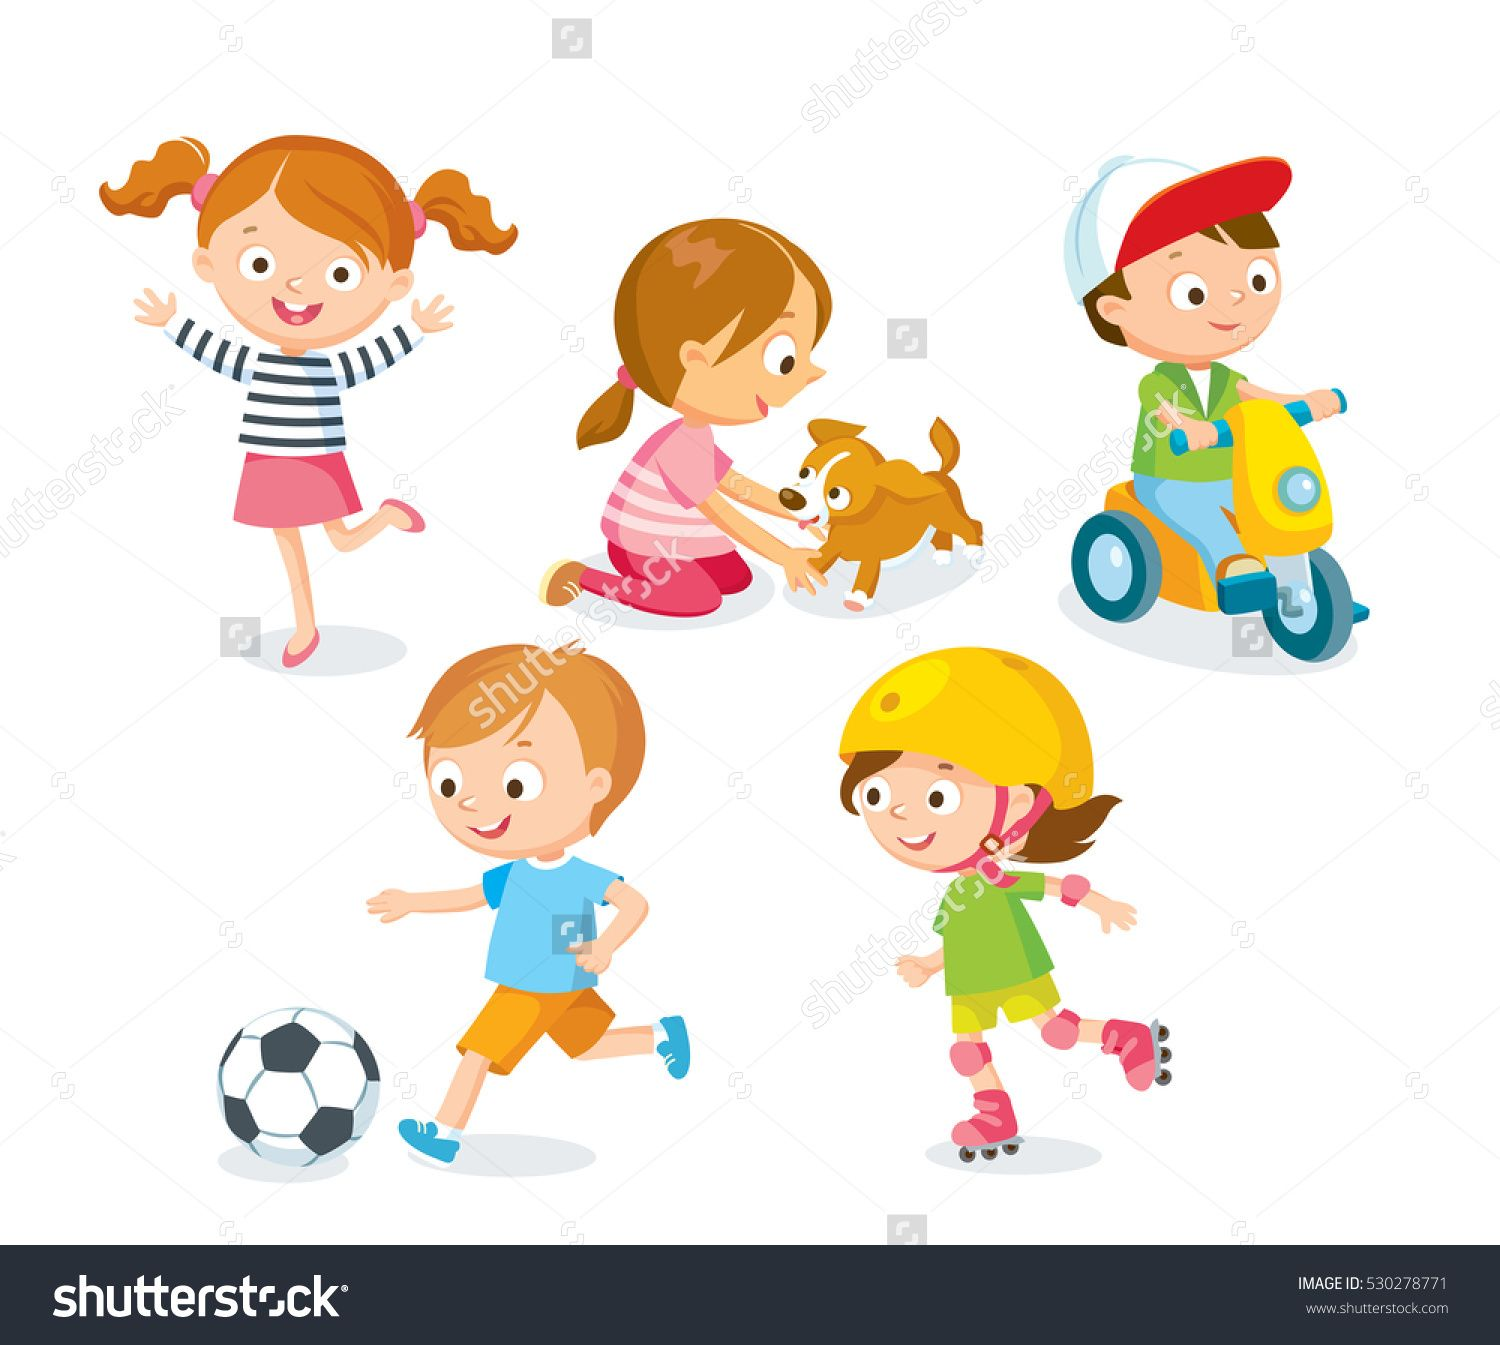 Children Playing With Toys Pets Playing Football بيوت عتيقه